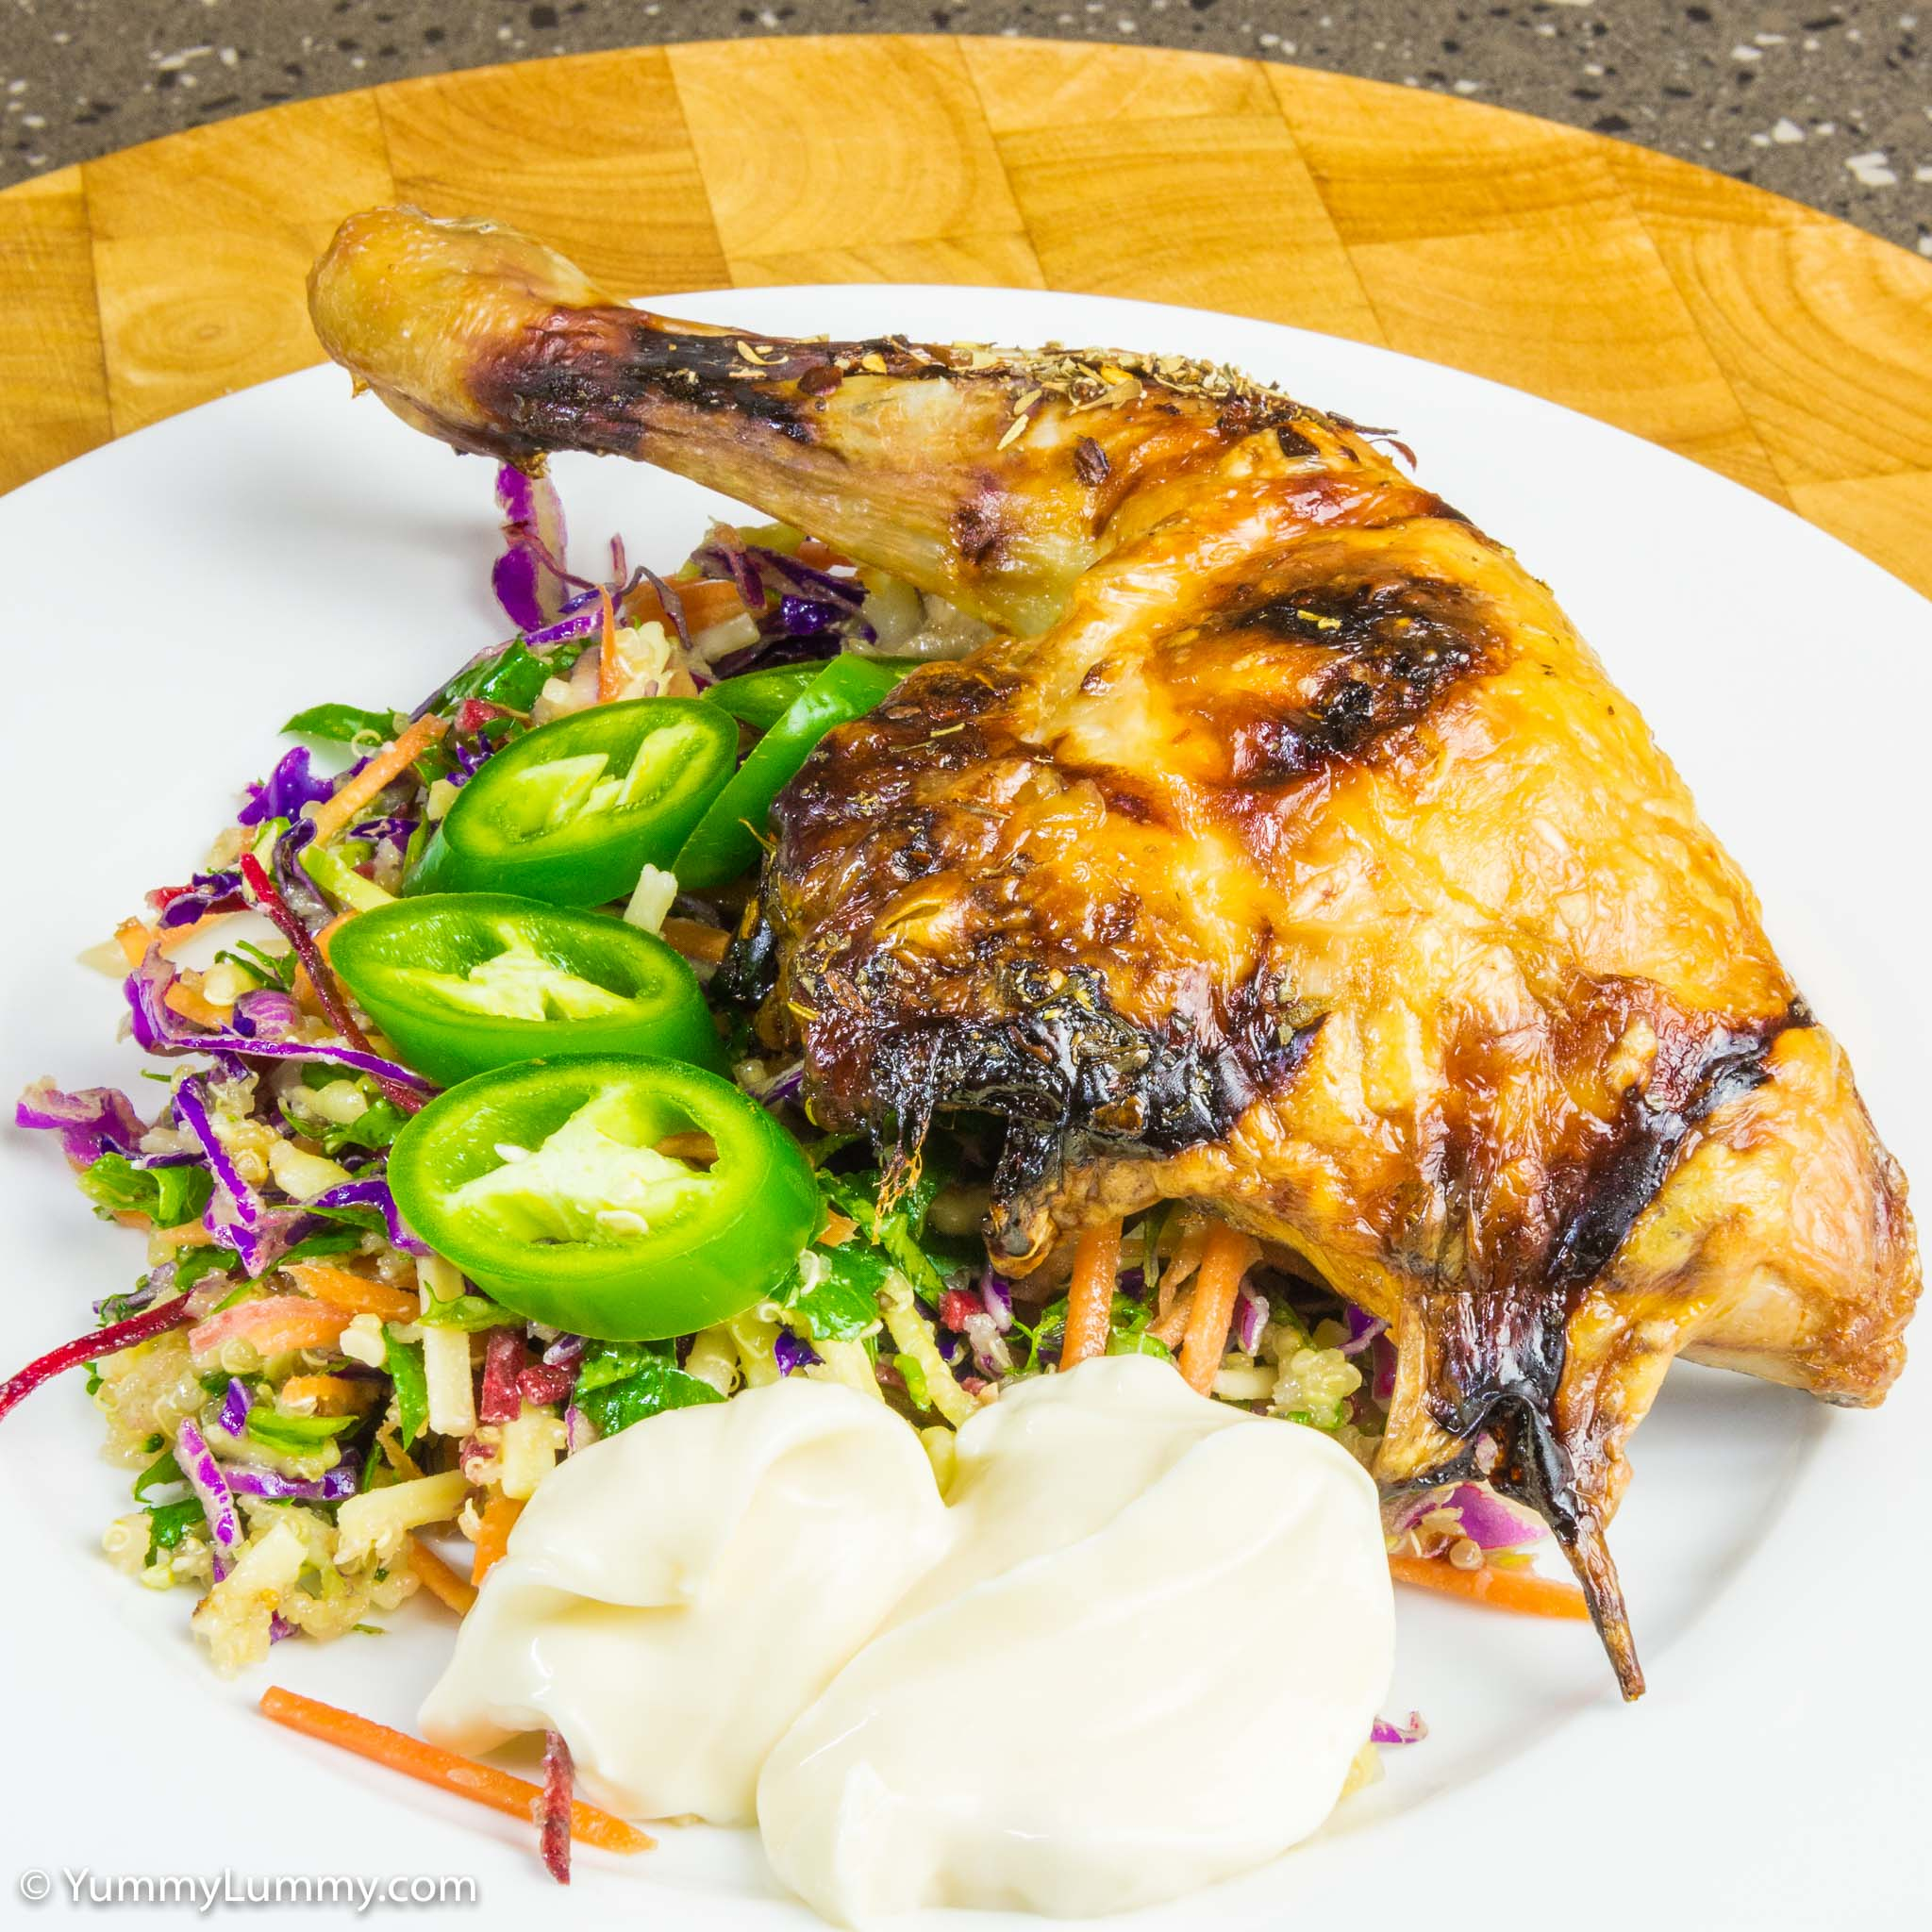 Delicious roasted Chicken Maryland with kale coleslaw, grated cheese ...